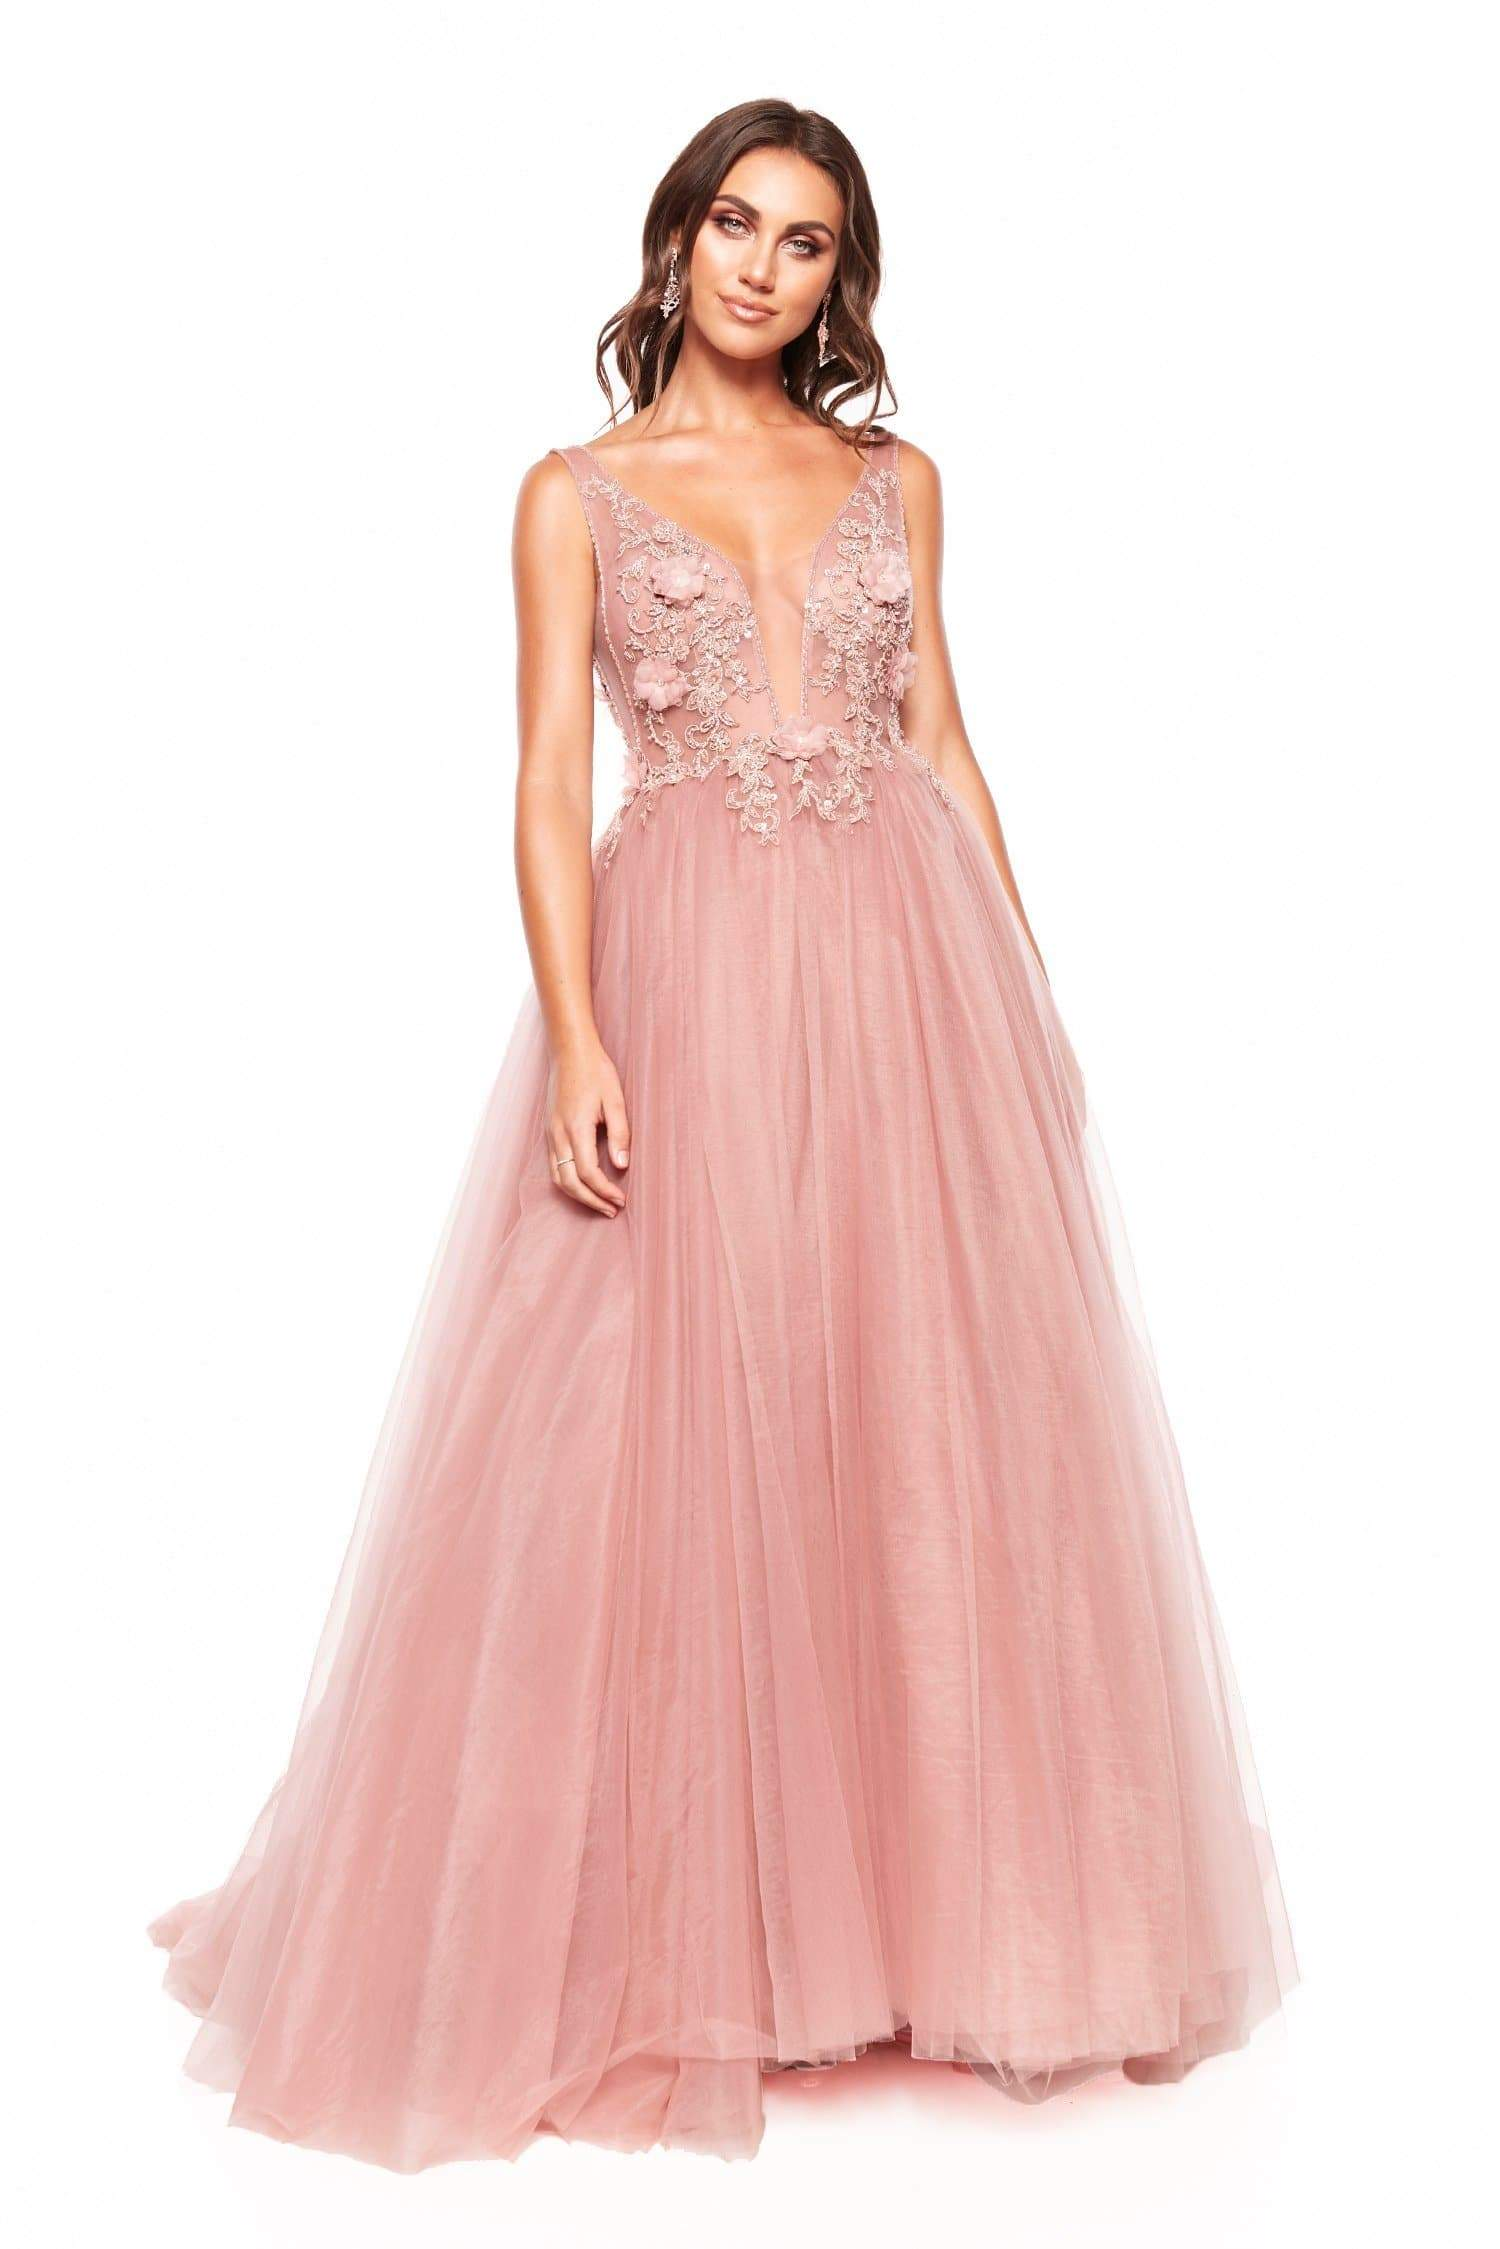 A&N Marinela Princess Embellished & Beaded Backless Tulle Gown - Pink